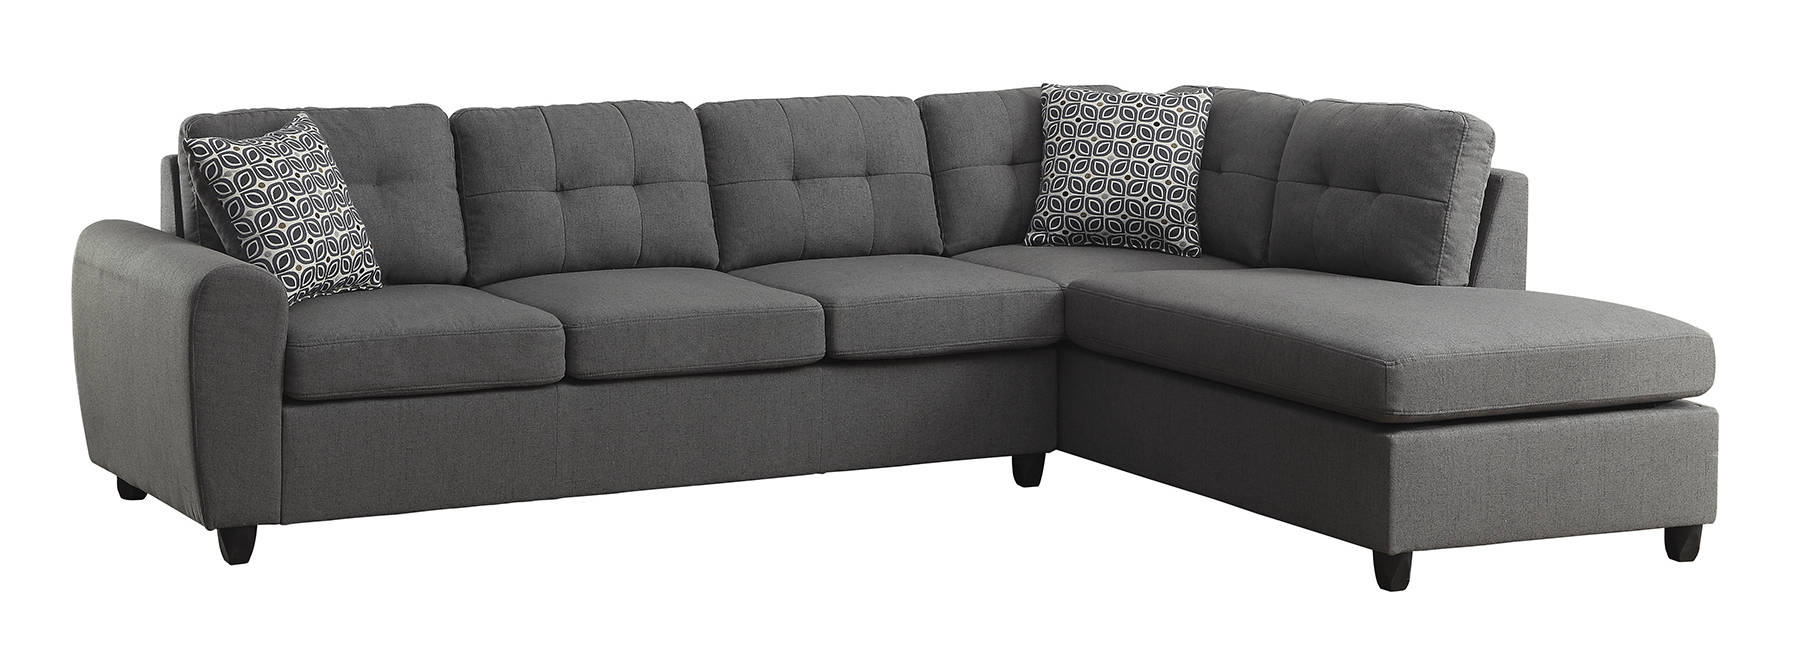 Coaster furniture stonenesse sectional